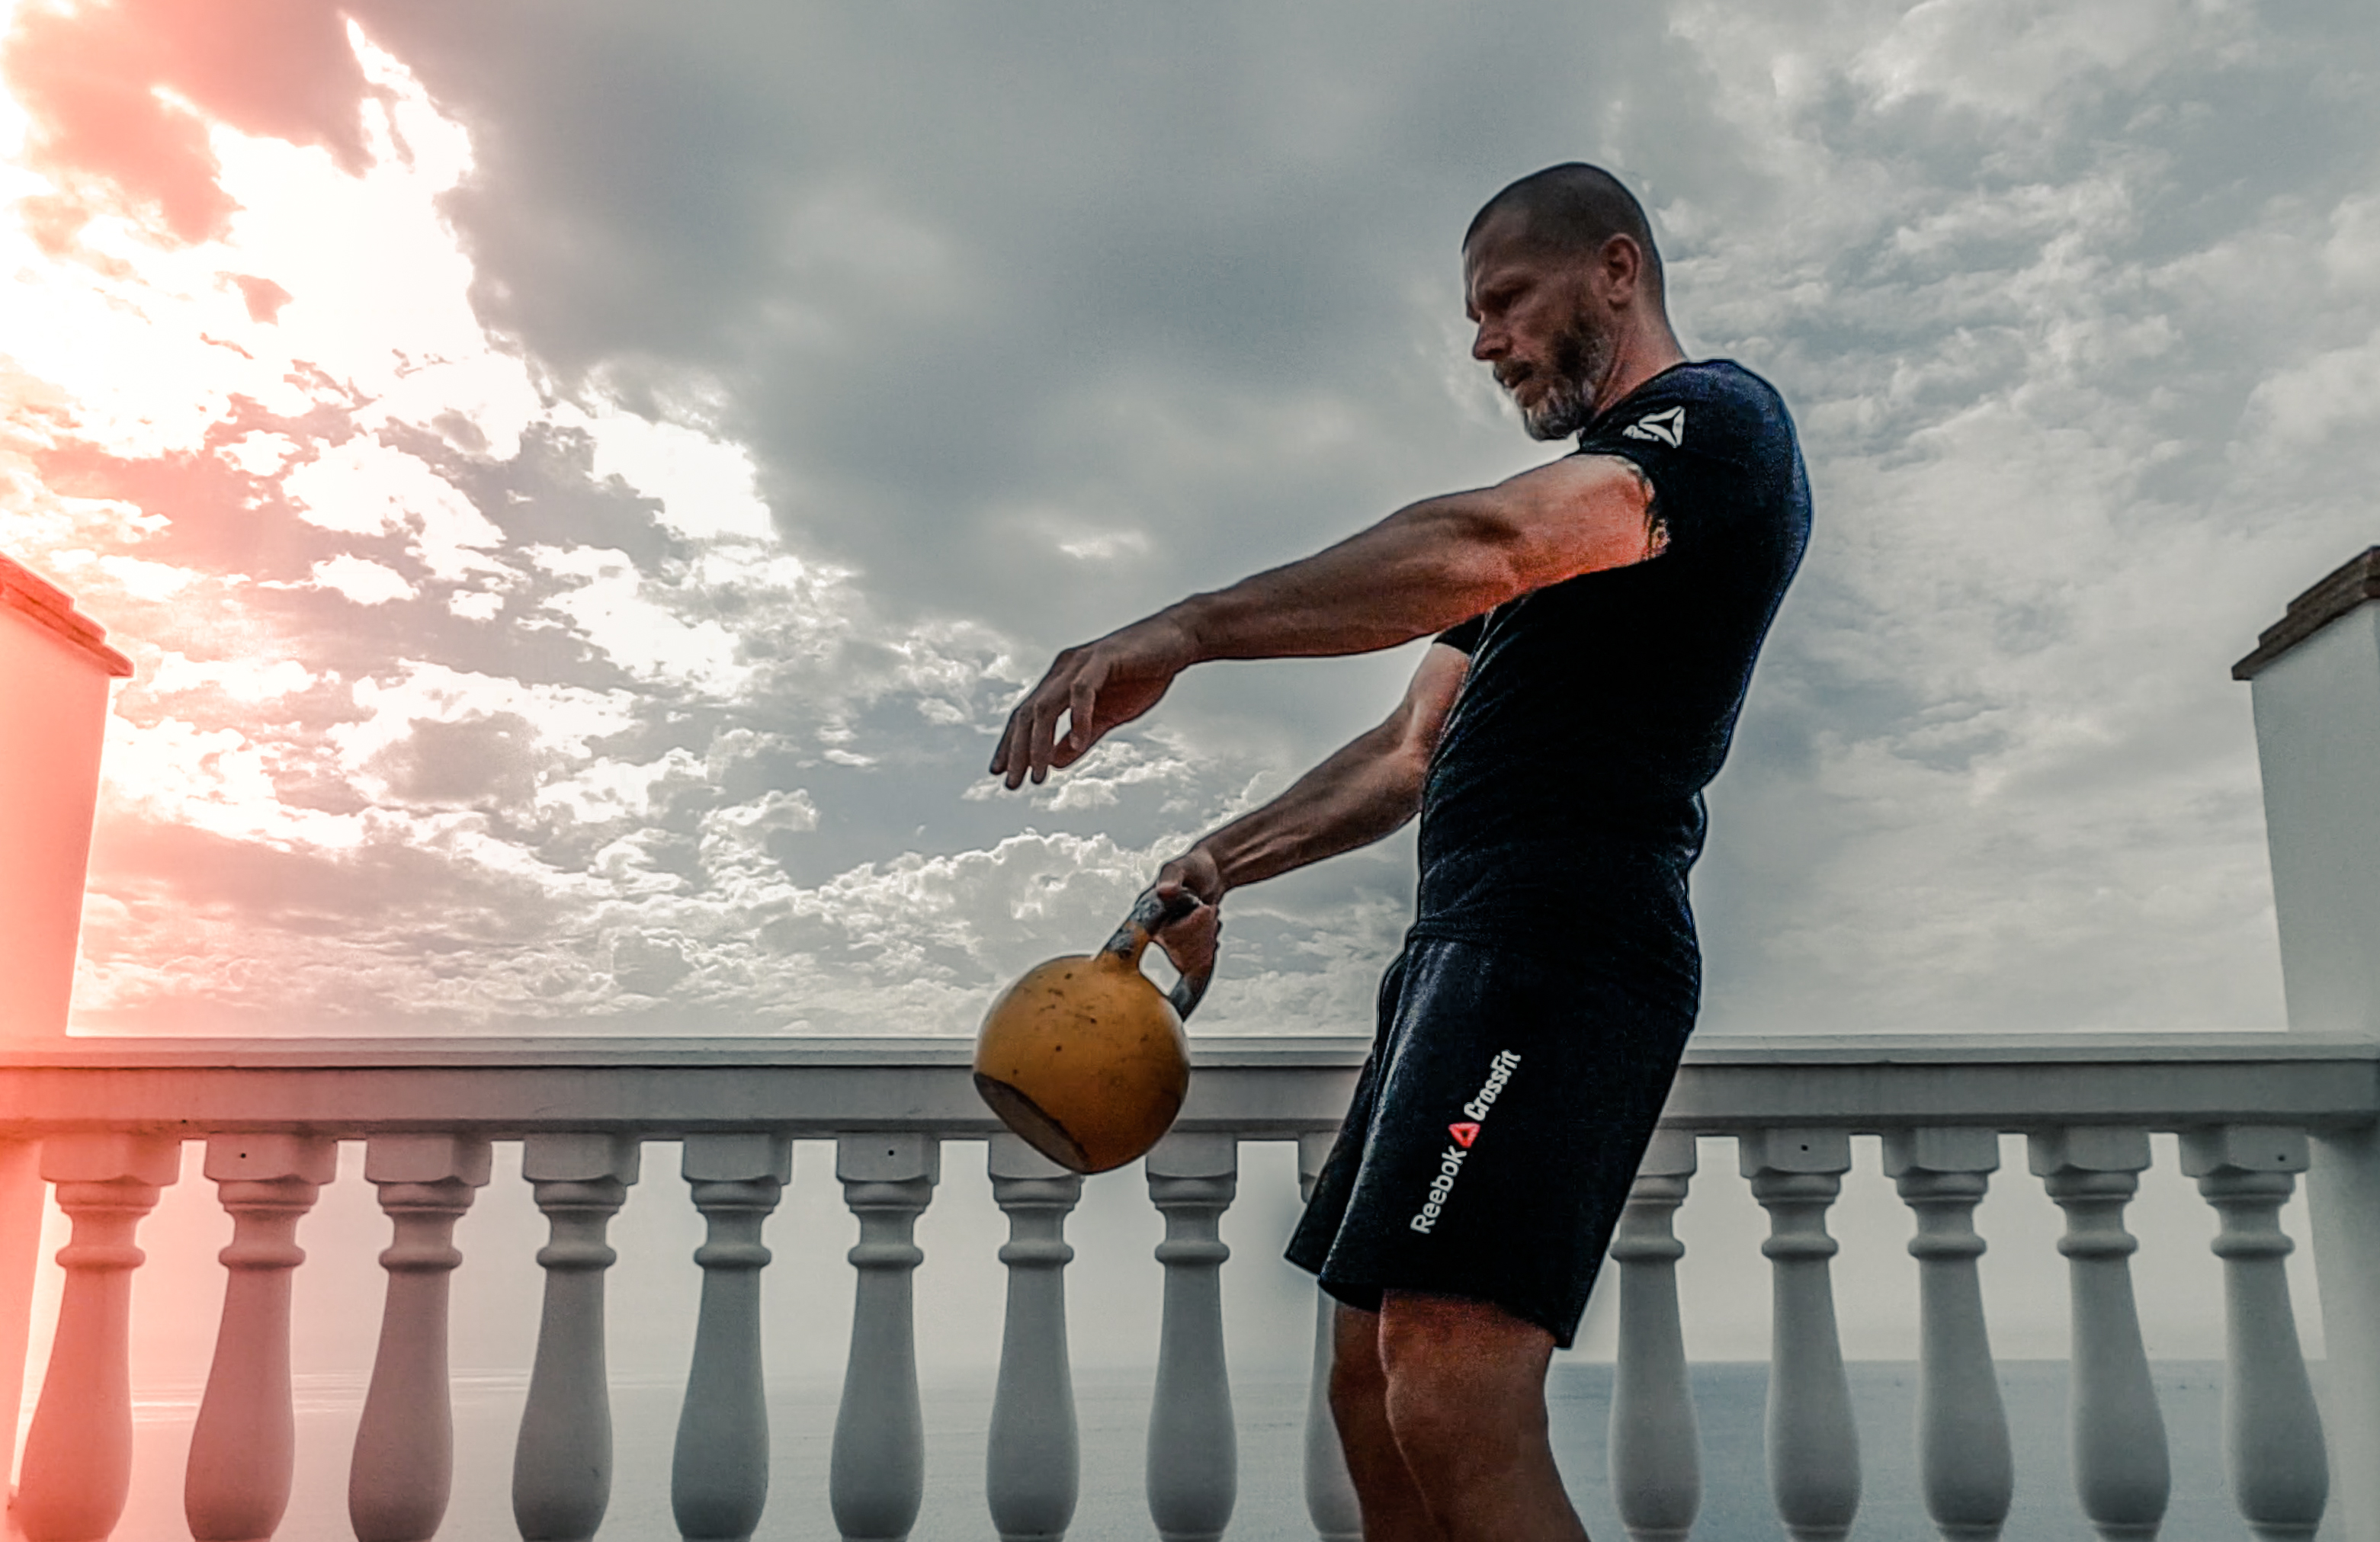 Canva - Man in Black Shirt Carrying Kettle Bell Outdoors